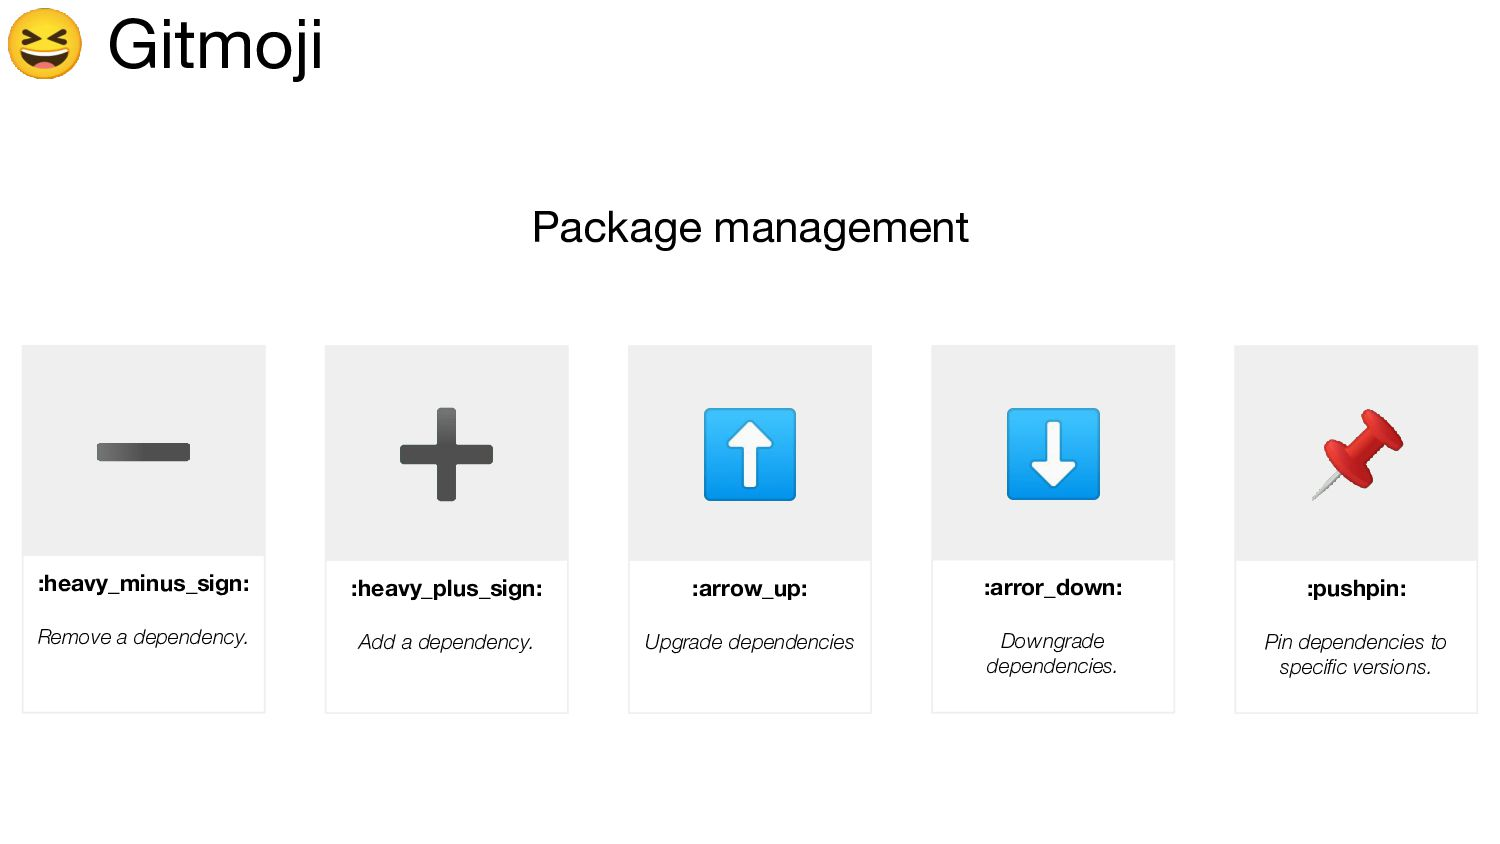 Gitmoji Package management